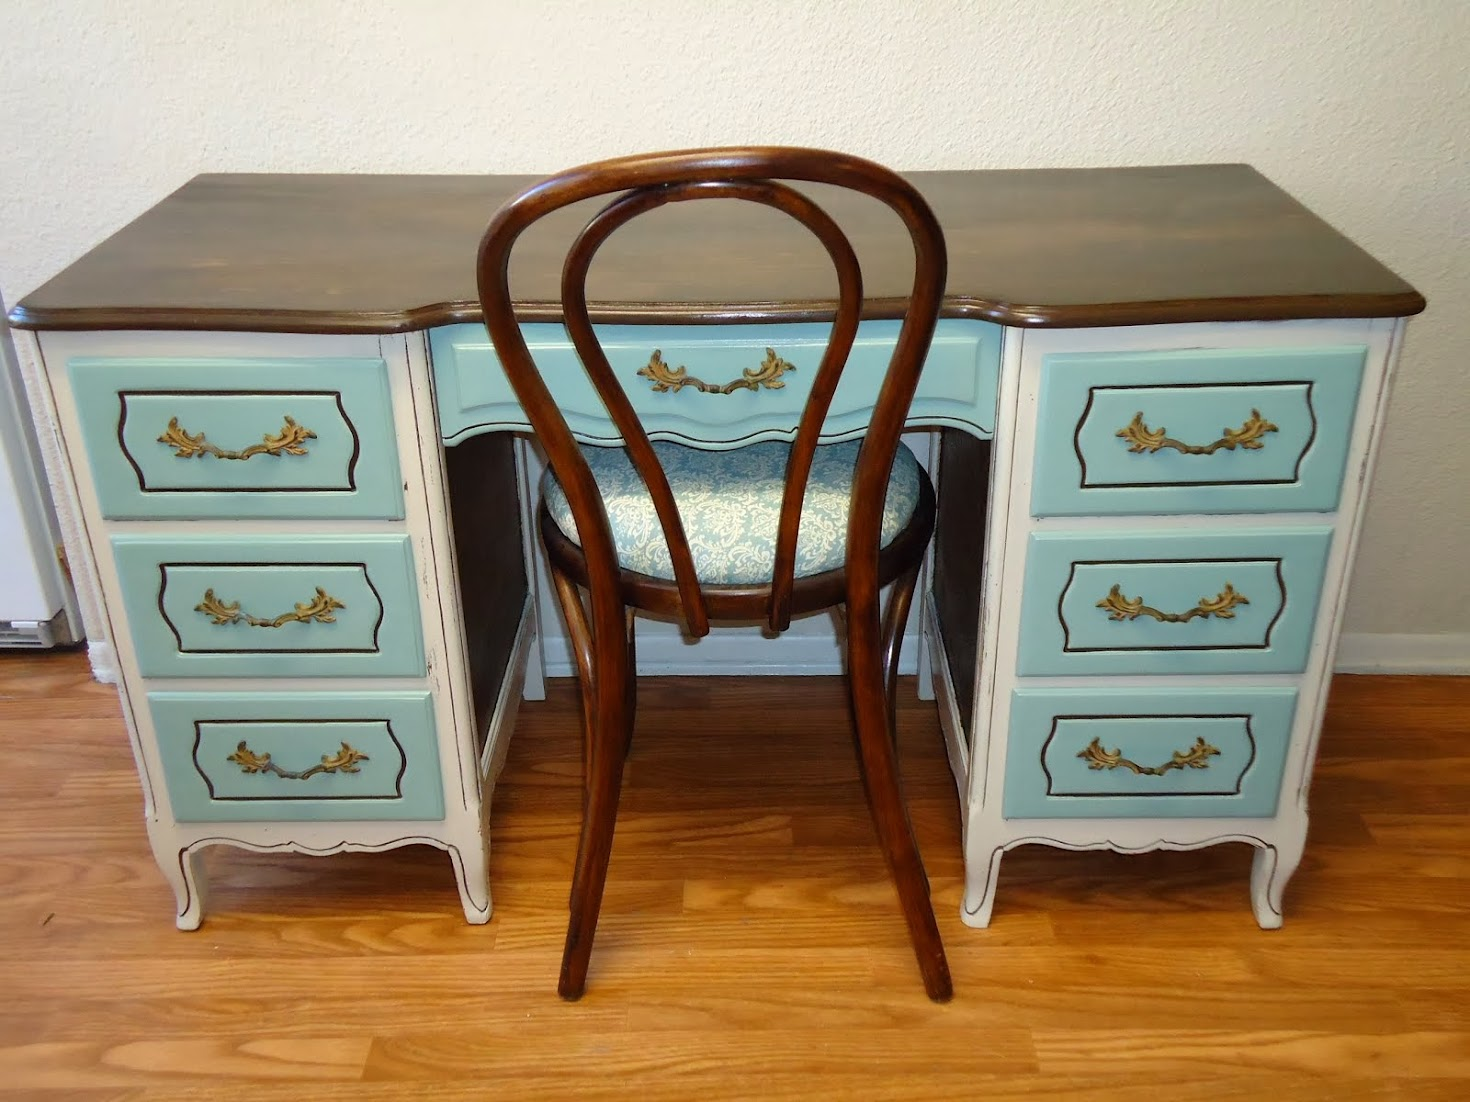 Refurbished Vintage Desk - SOLD